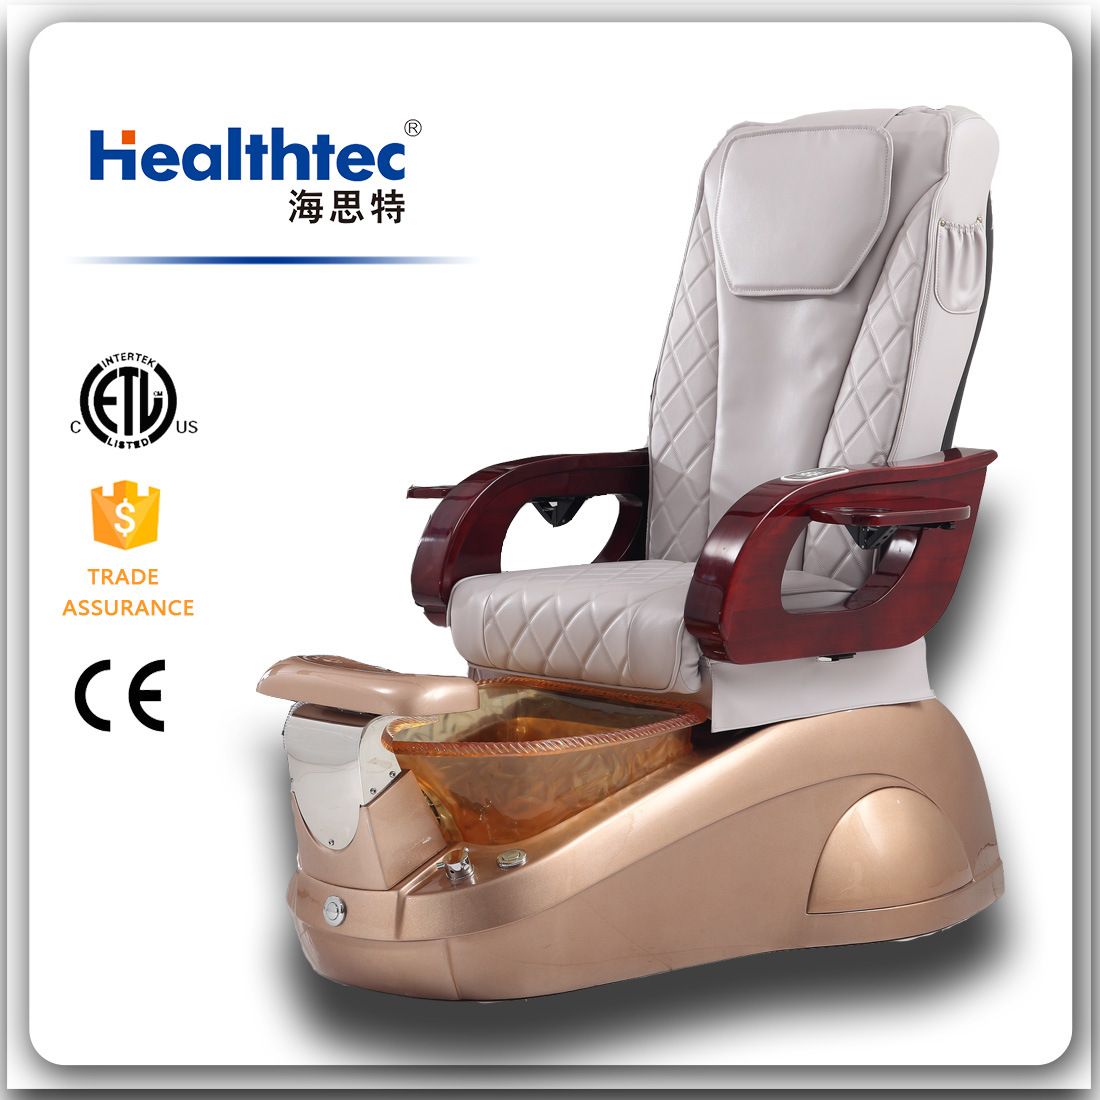 European Touch Pedicure Chair Hot Item Luxury European Pedicure Chair Inflatable Jacuzzi B801 18